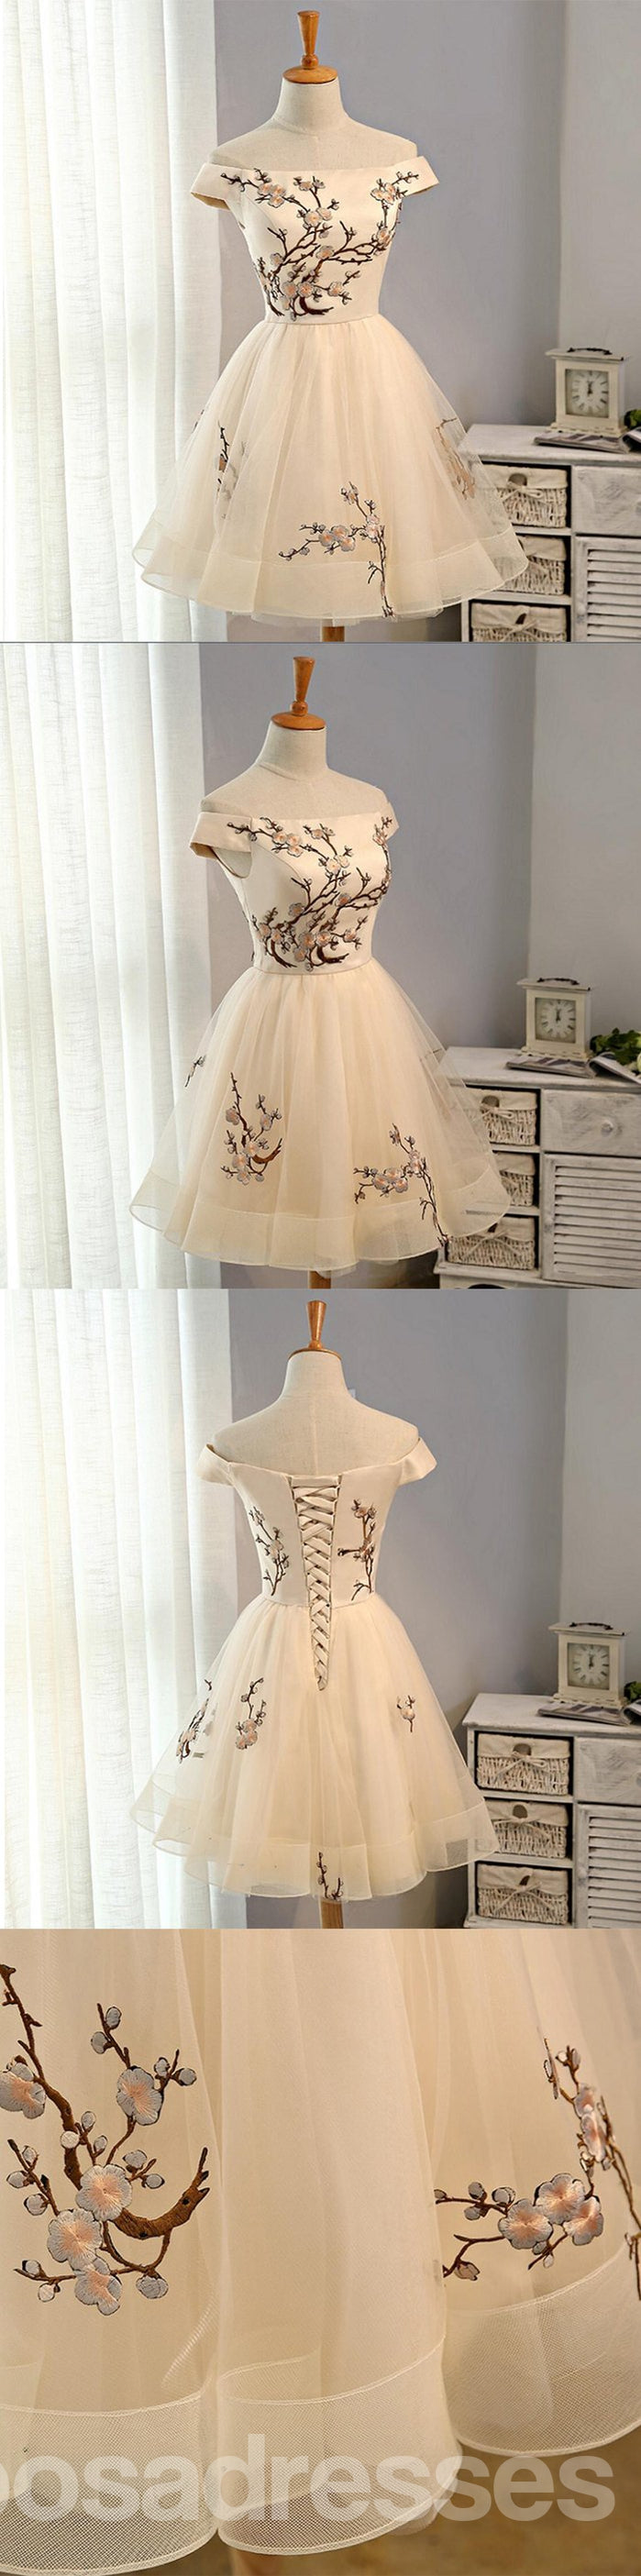 Off Shoulder Straight Neckline Embroidery Tulle Short Homecoming Prom Dresses, Affordable Short Party Prom Sweet 16 Dresses, Perfect Homecoming Cocktail Dresses, CM361